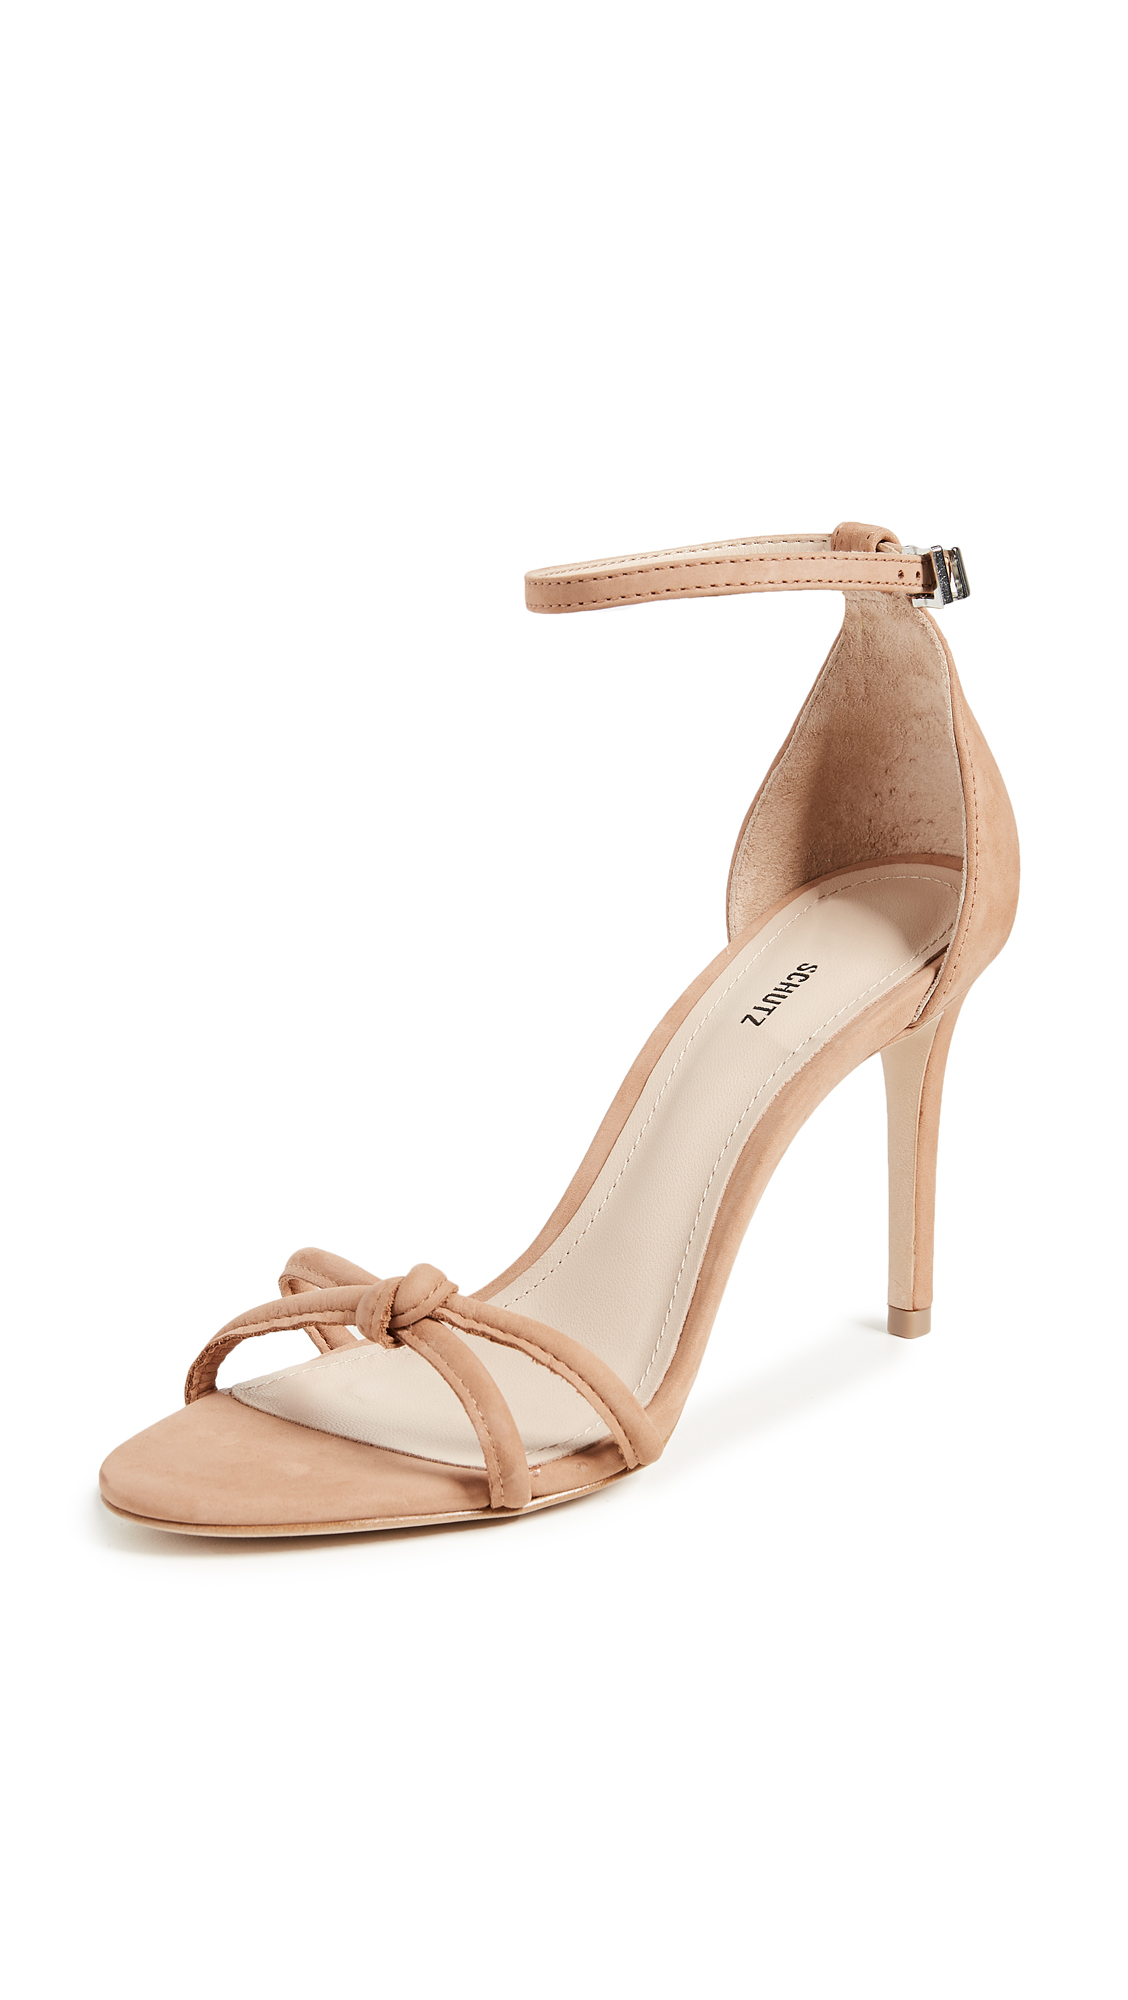 Schutz Rhana Strappy Sandals - Toasted Nut